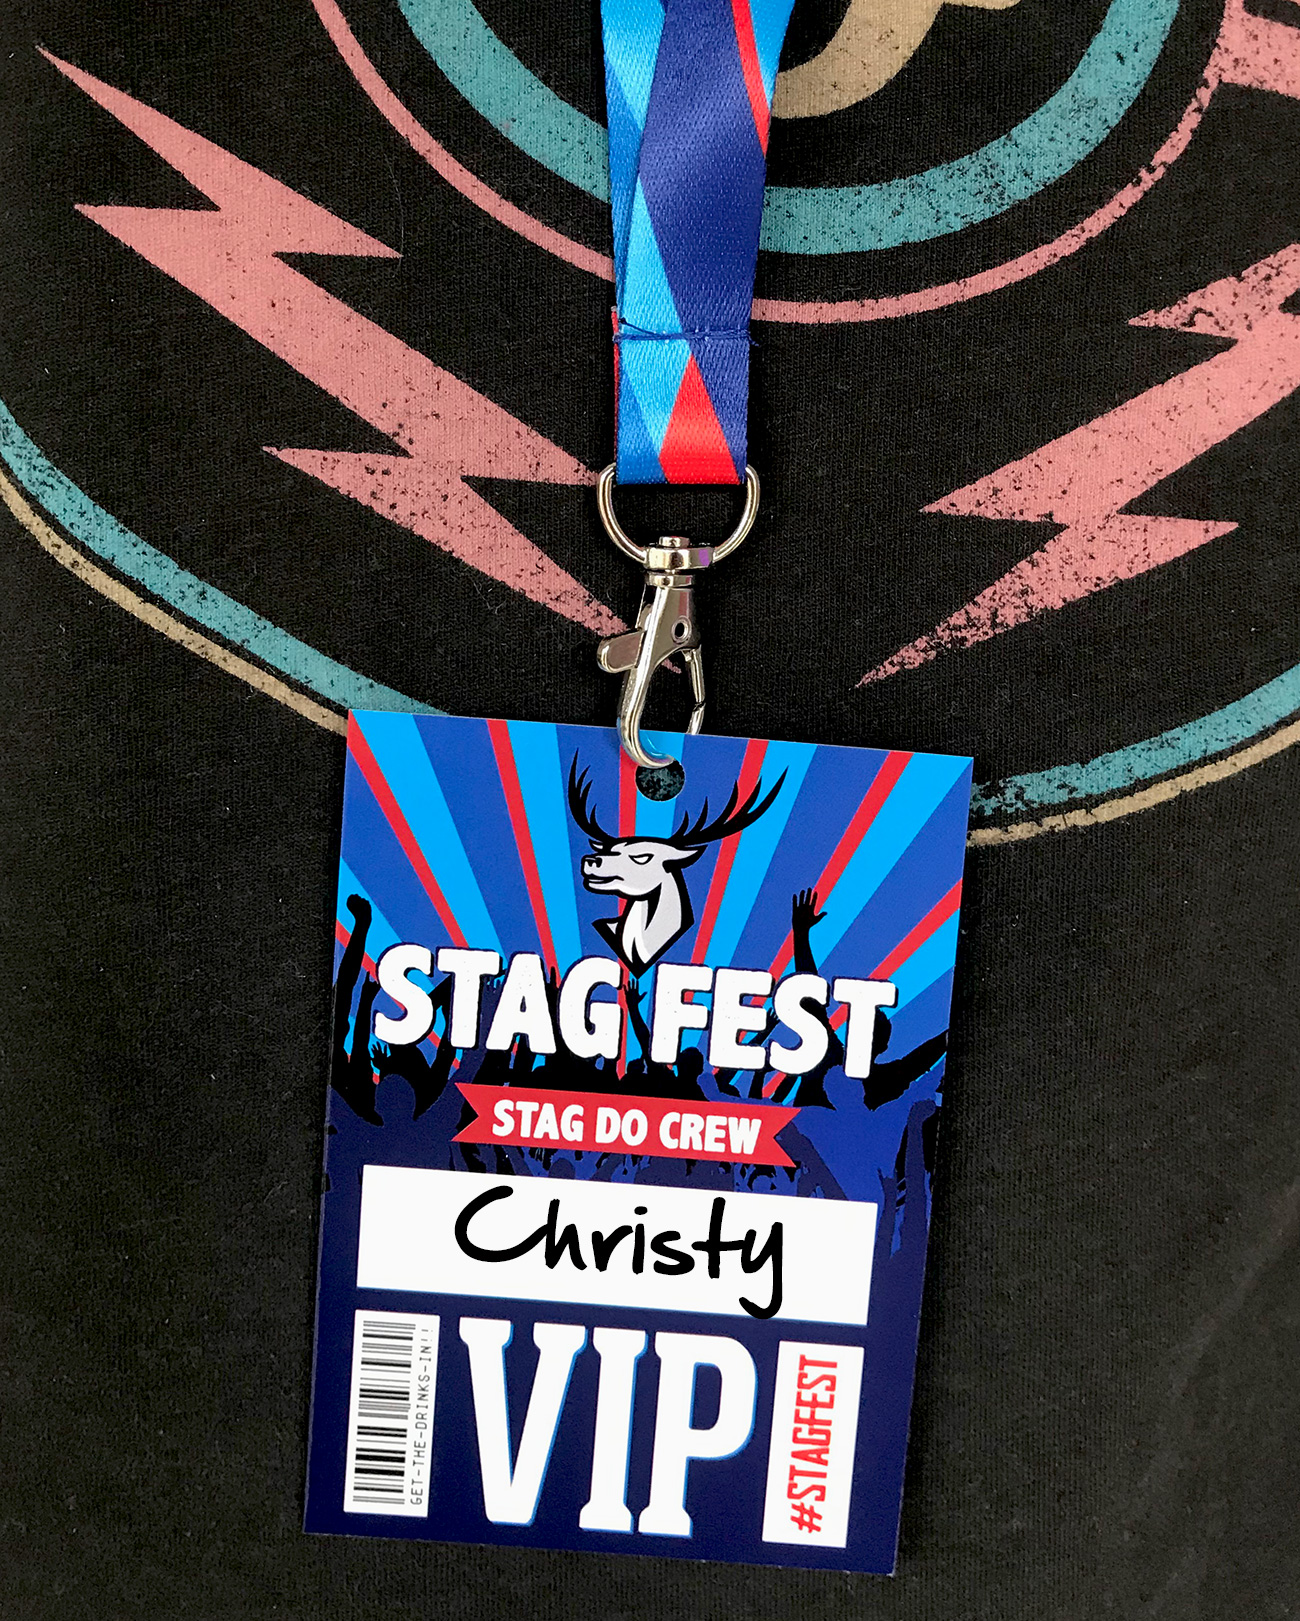 stagfest festival stag do party vip lanyards